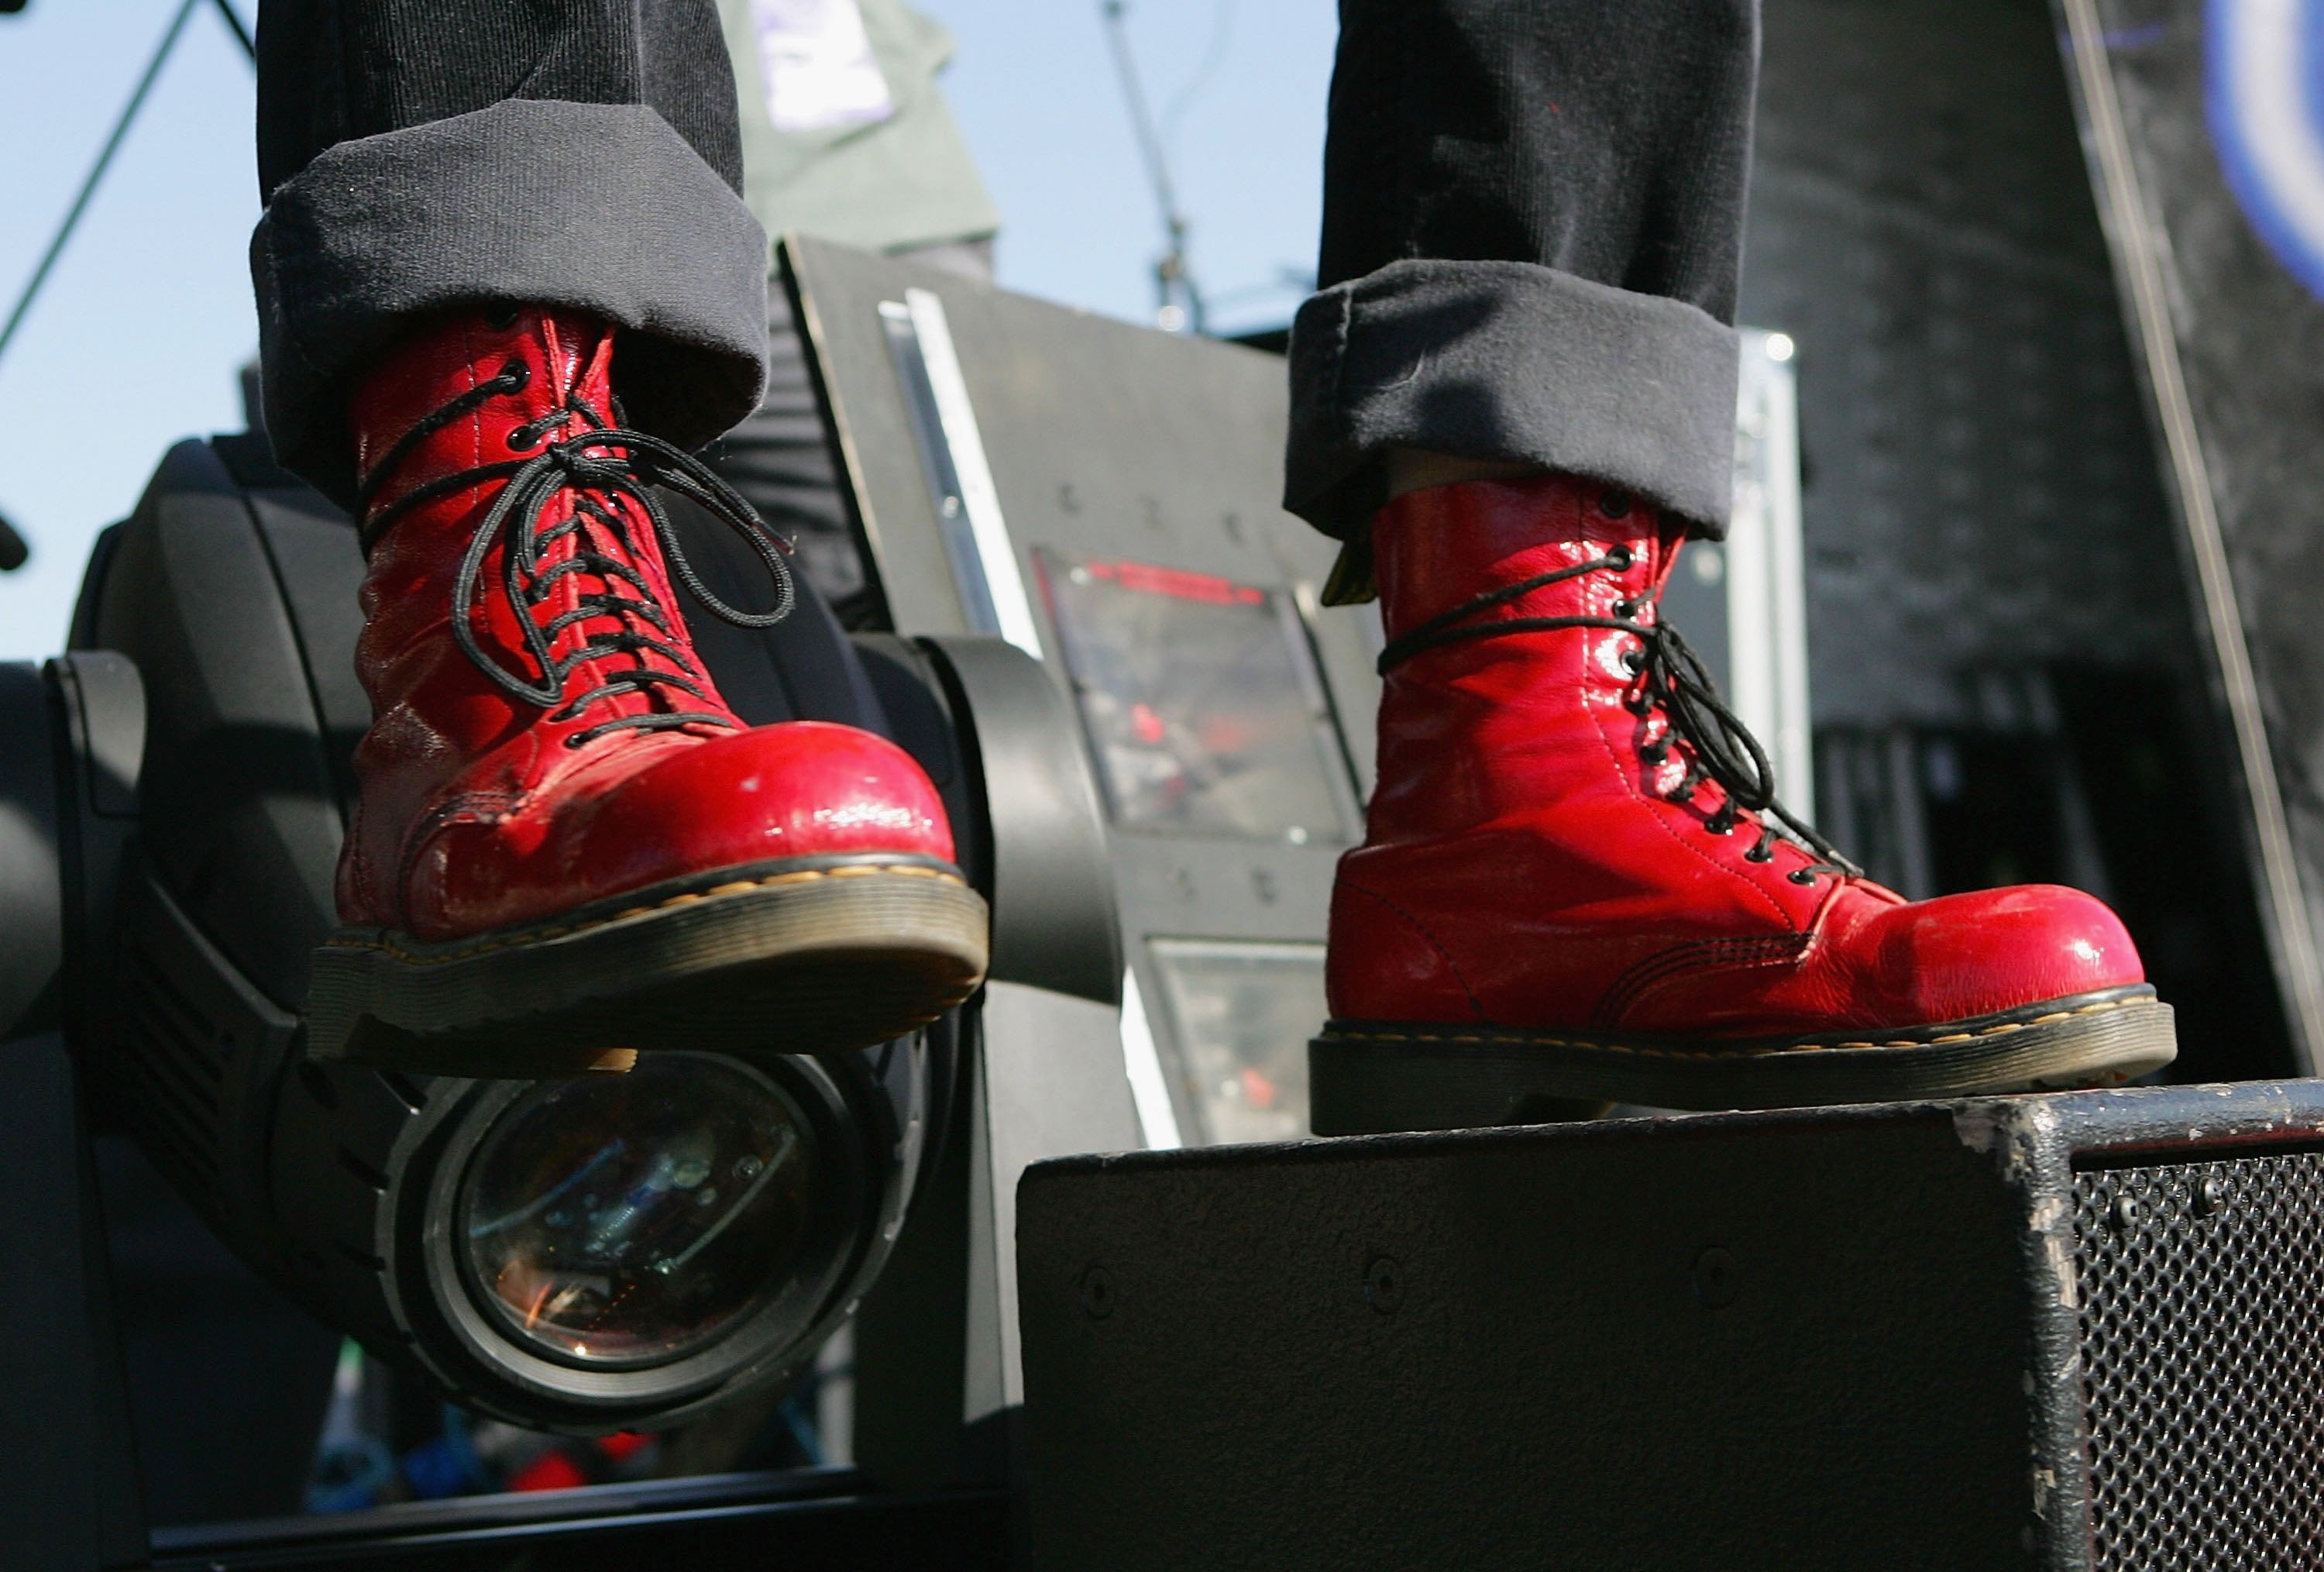 f8145ad4b17 The History Of Dr. Martens And My Lifelong Love Affair With The Subcultural  Boot